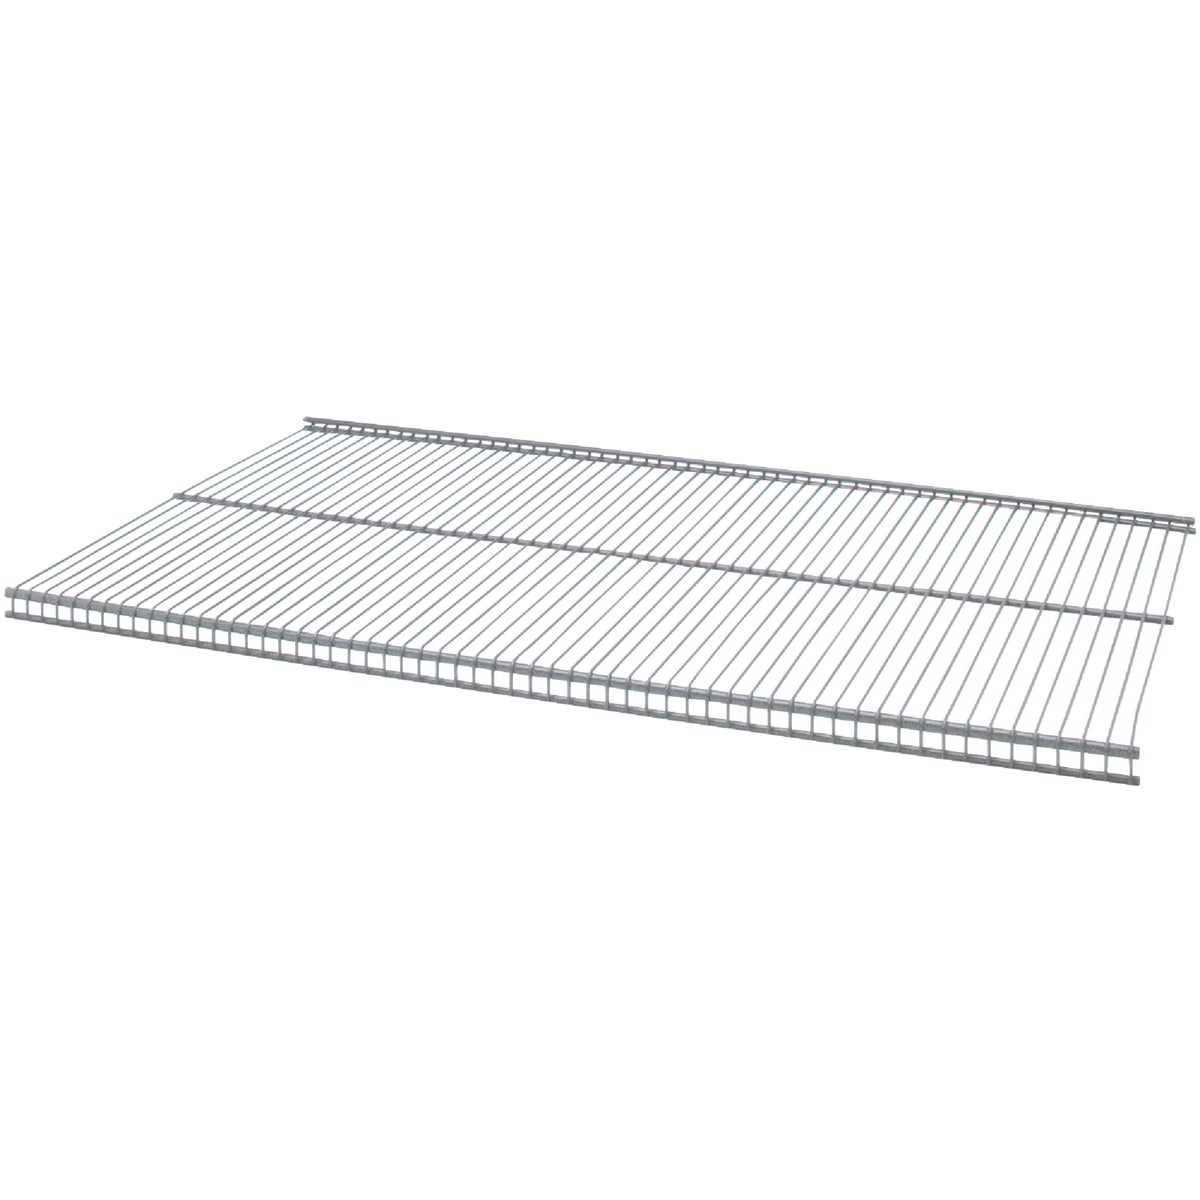 12X24 NKL PROFILE SHELF - 1813122445 by Schulte Corp